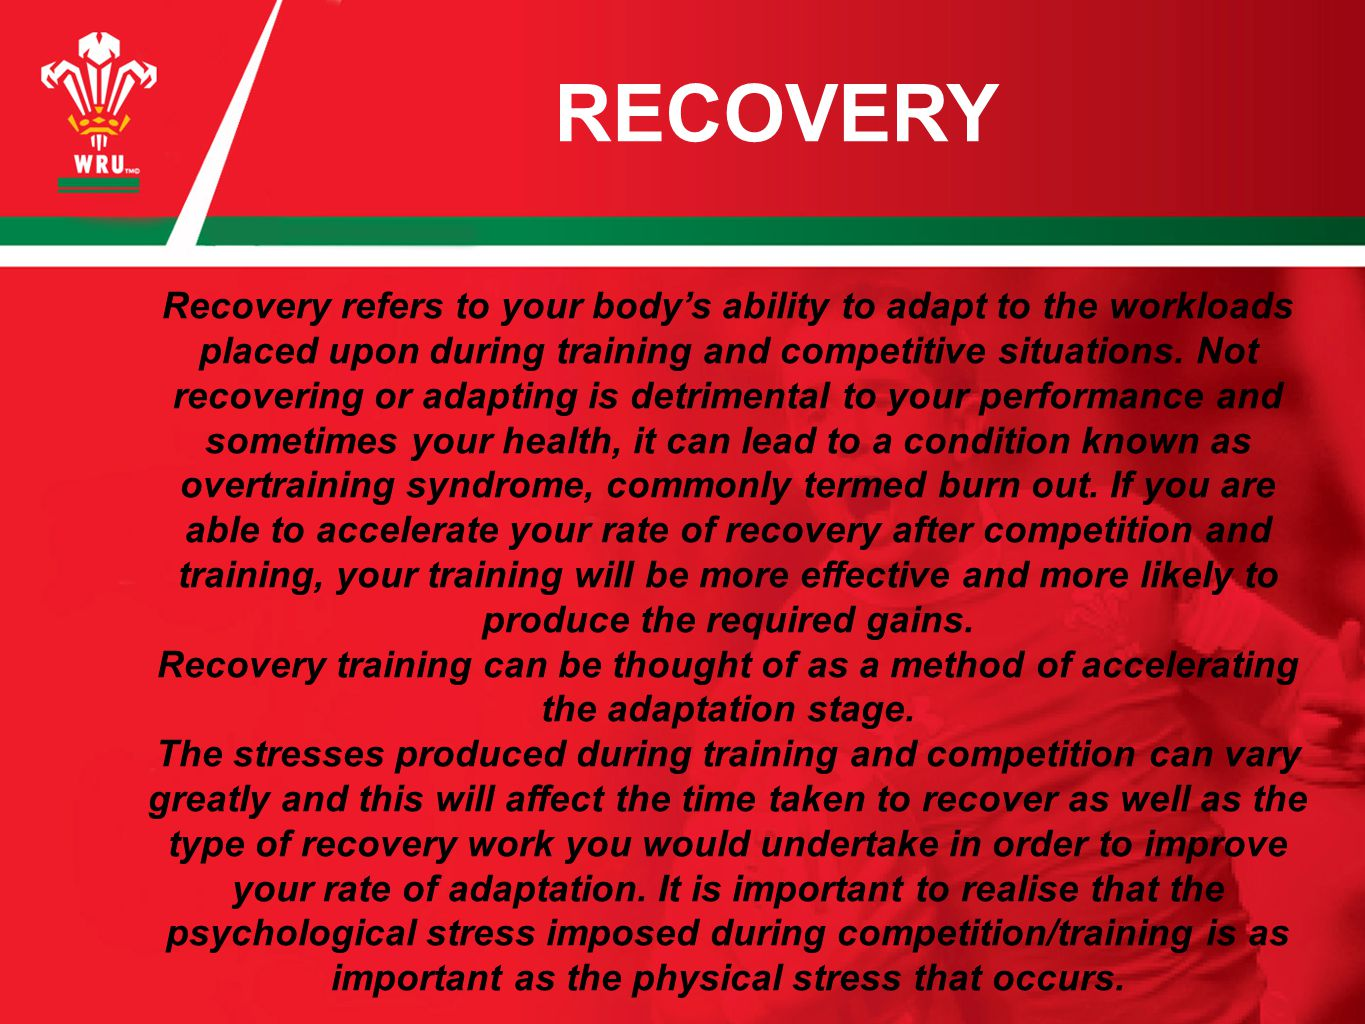 Recovery refers to your body's ability to adapt to the workloads placed upon during training and competitive situations.